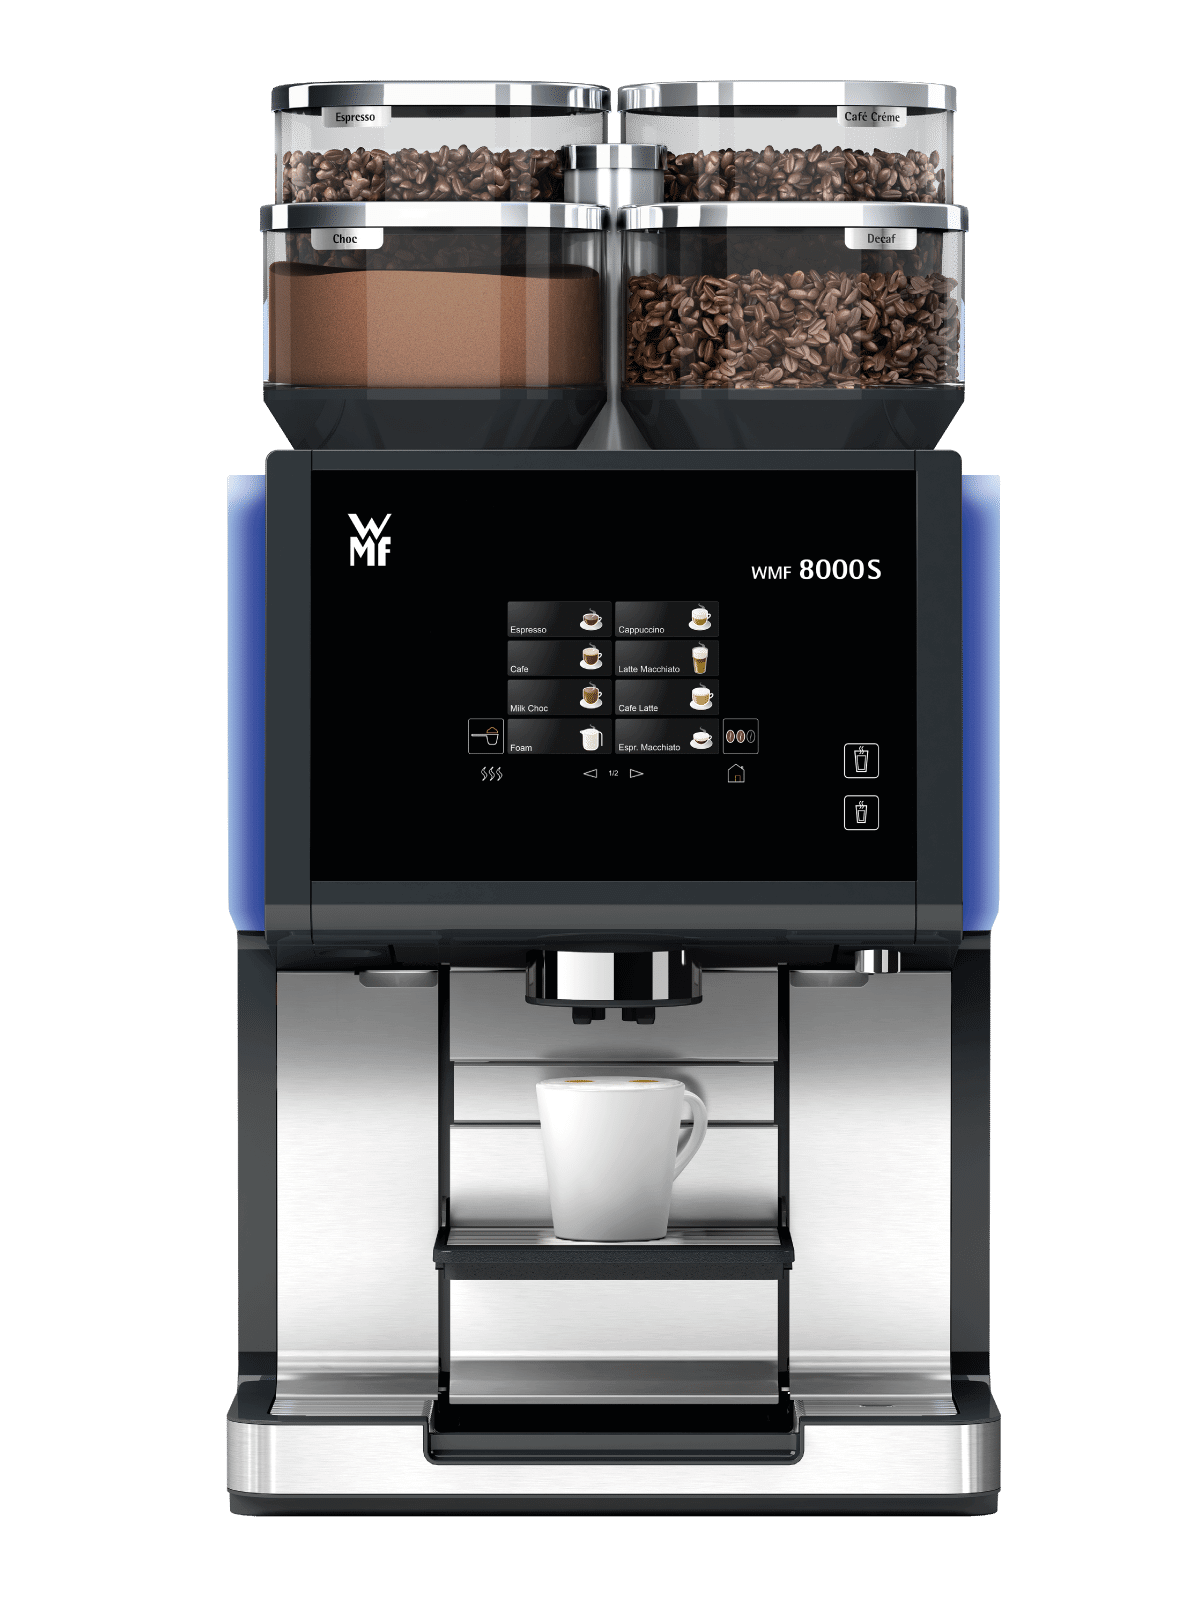 WMF 8000S commercial coffee machine front view black and silver model with large touchscreen